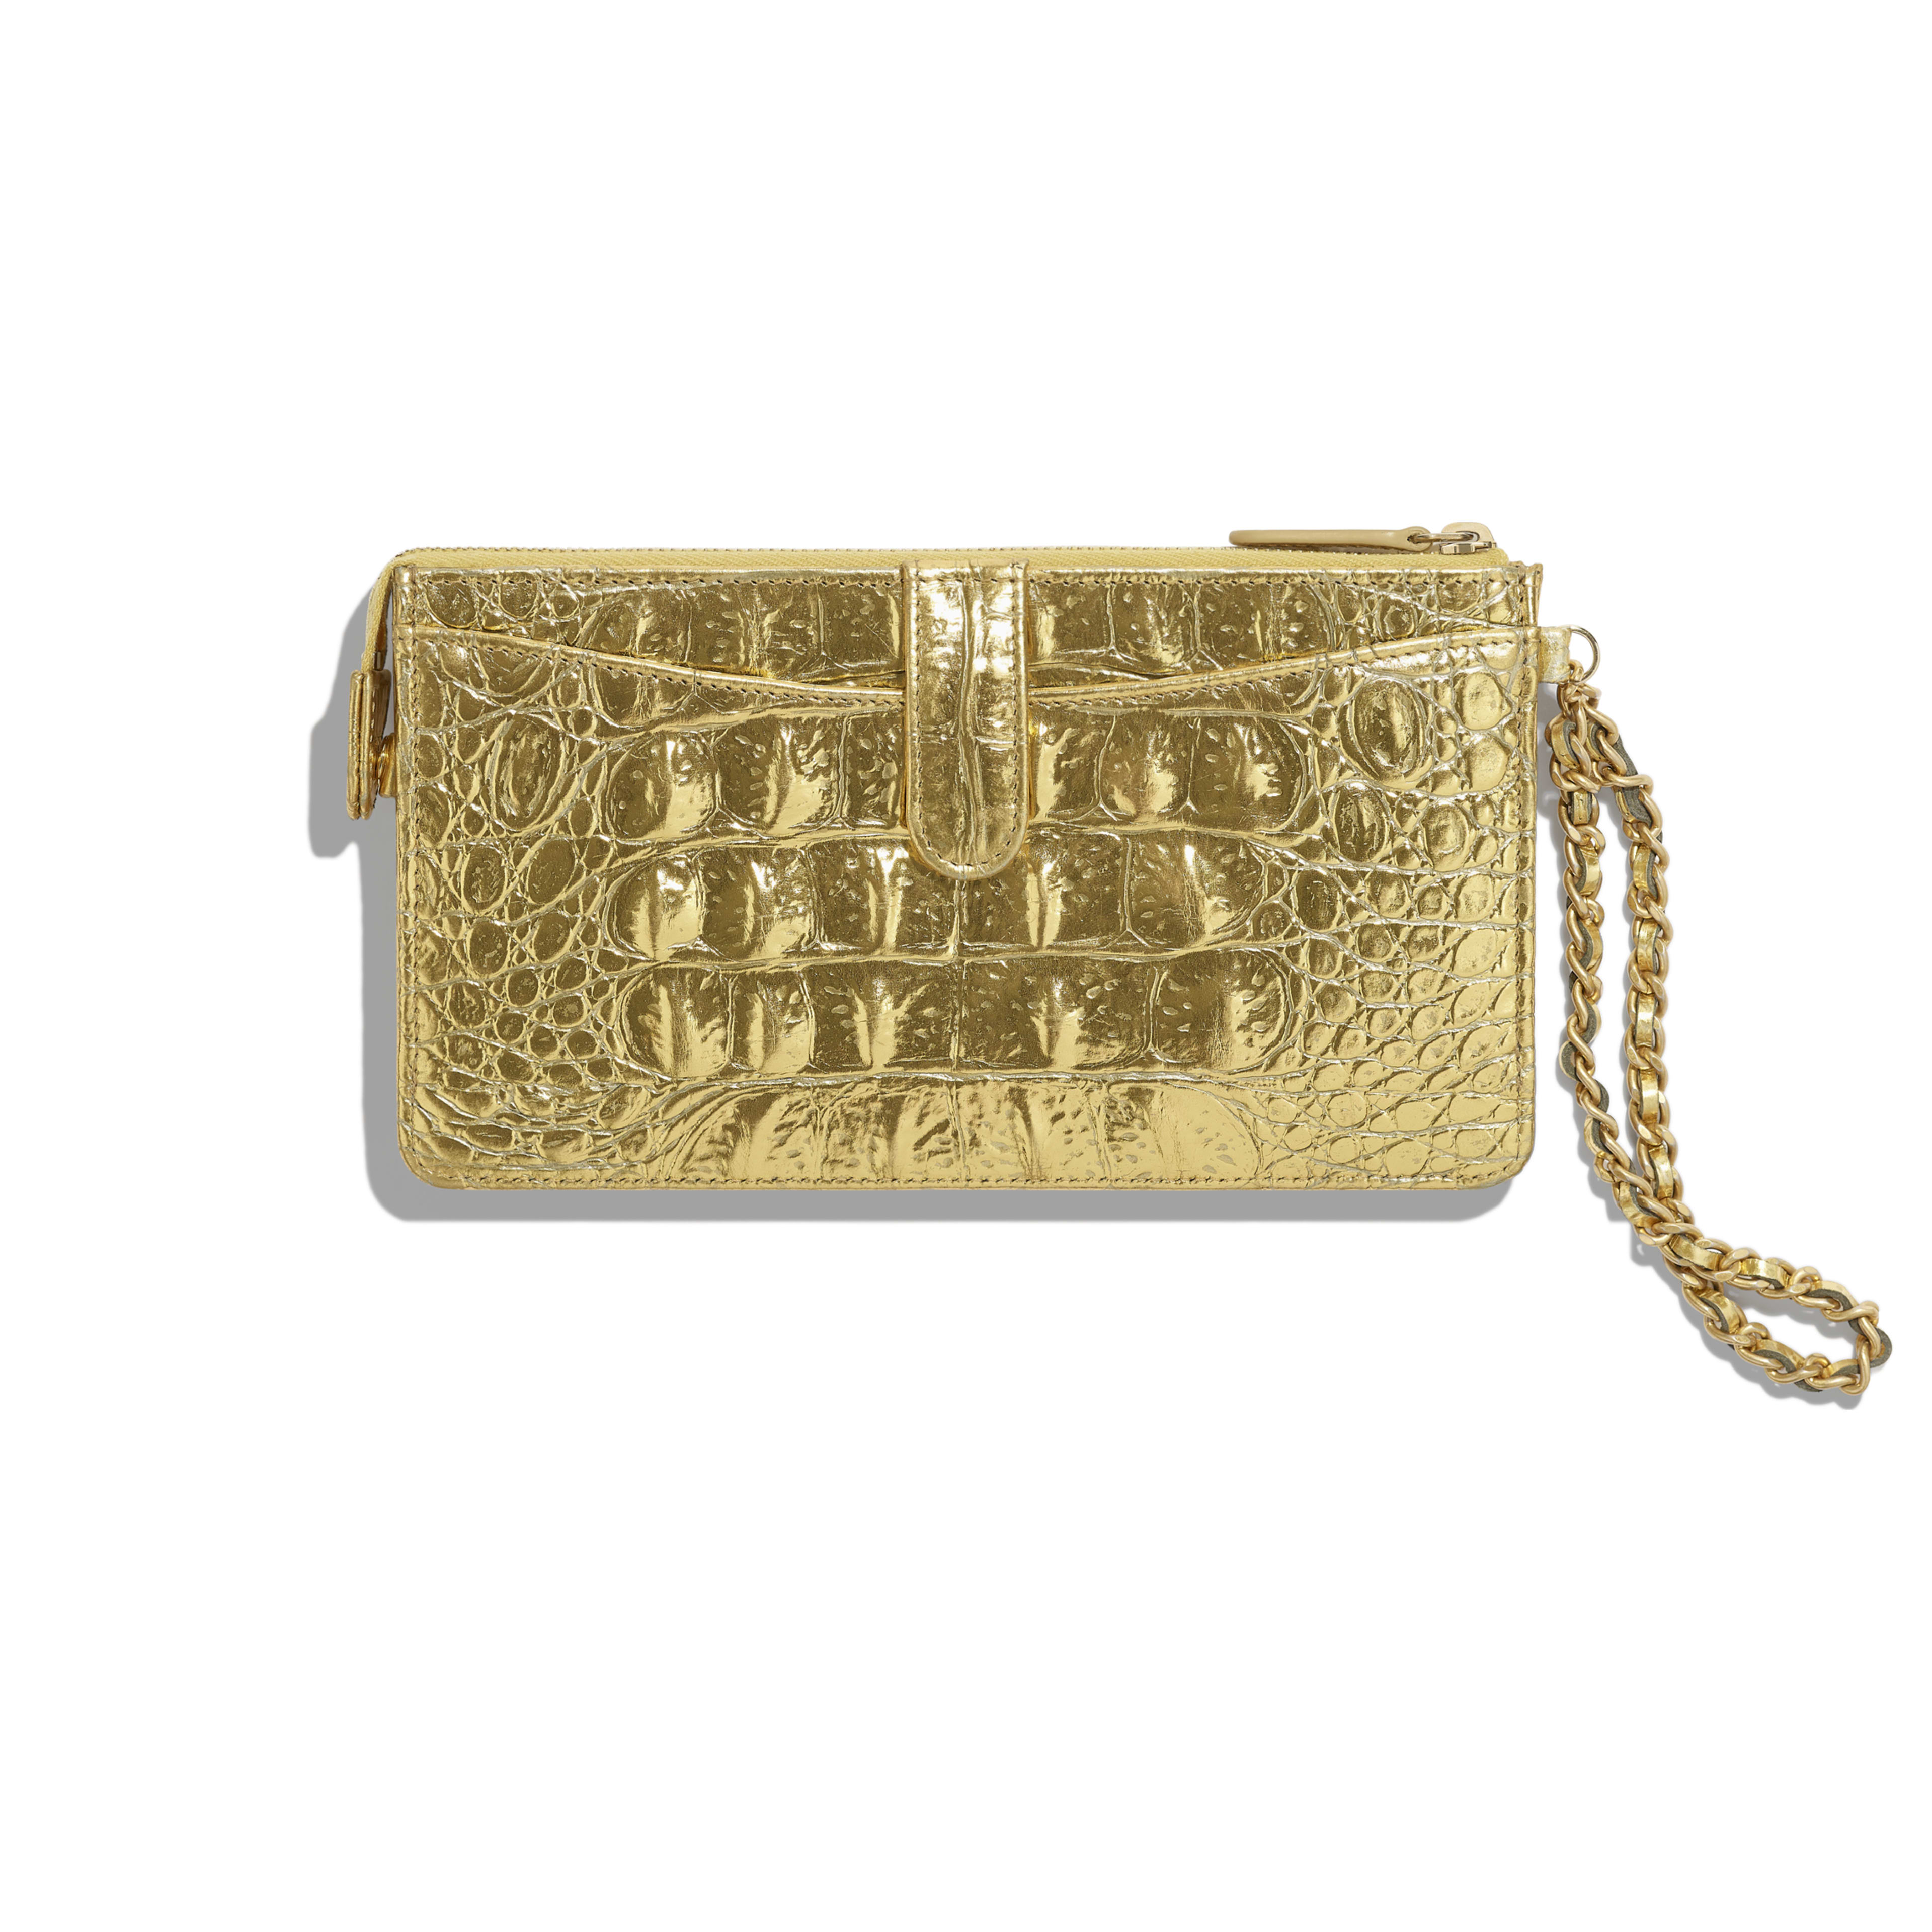 Classic Pouch with Handle - Gold - Metallic Crocodile Embossed Calfskin & Gold Metal - Alternative view - see full sized version